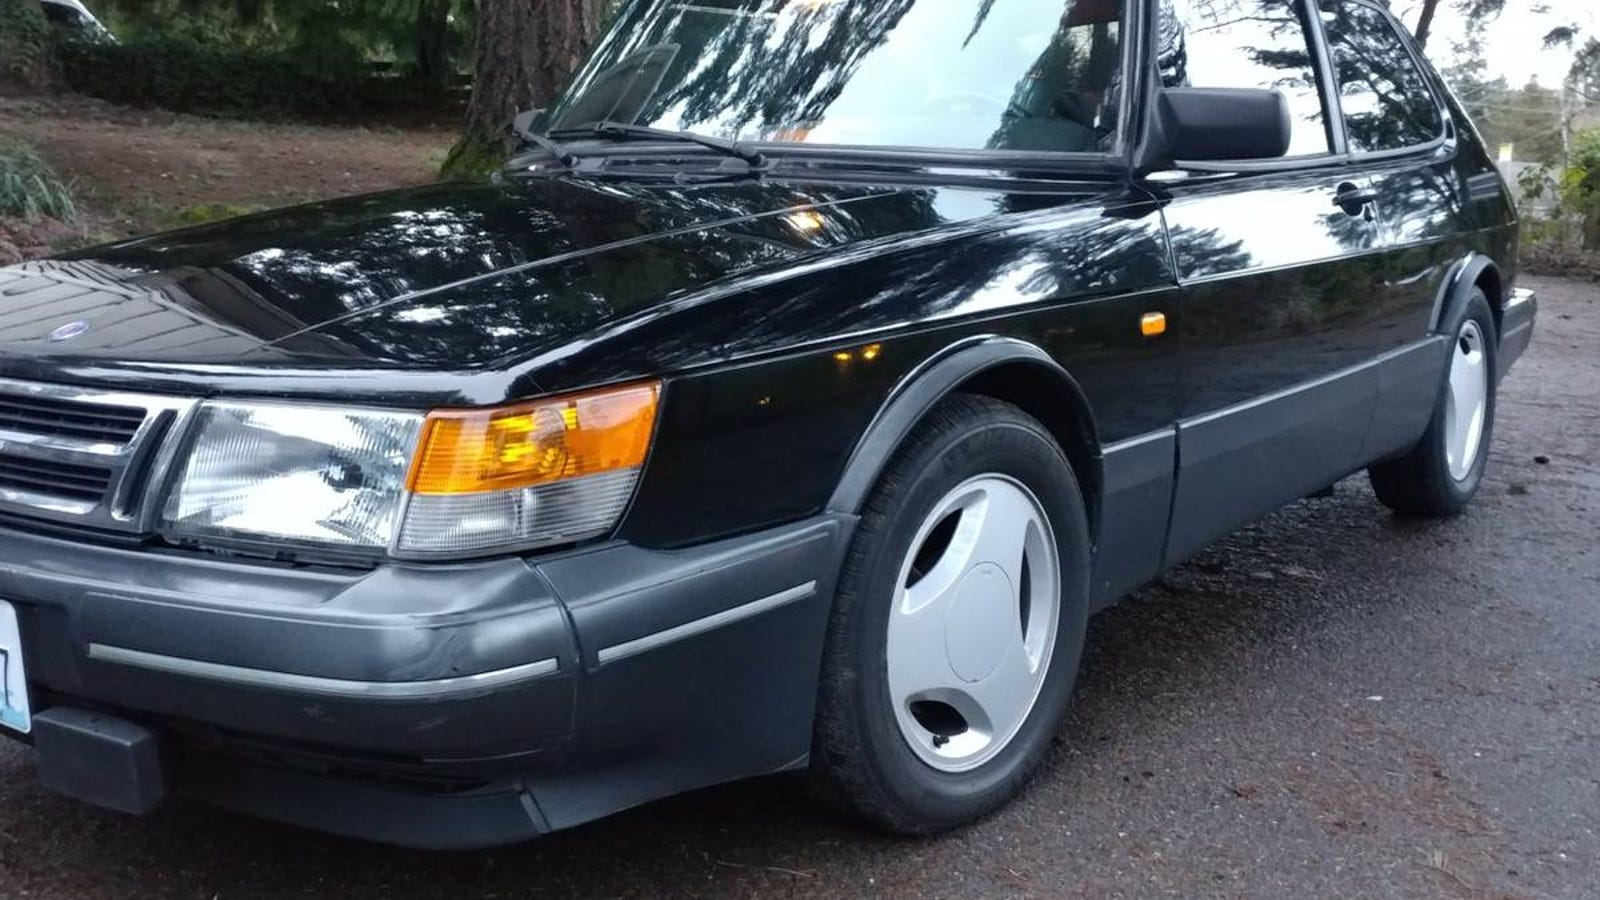 At $8,000, Is This 1990 900 SPG Not The Same Old Saab And Dance?